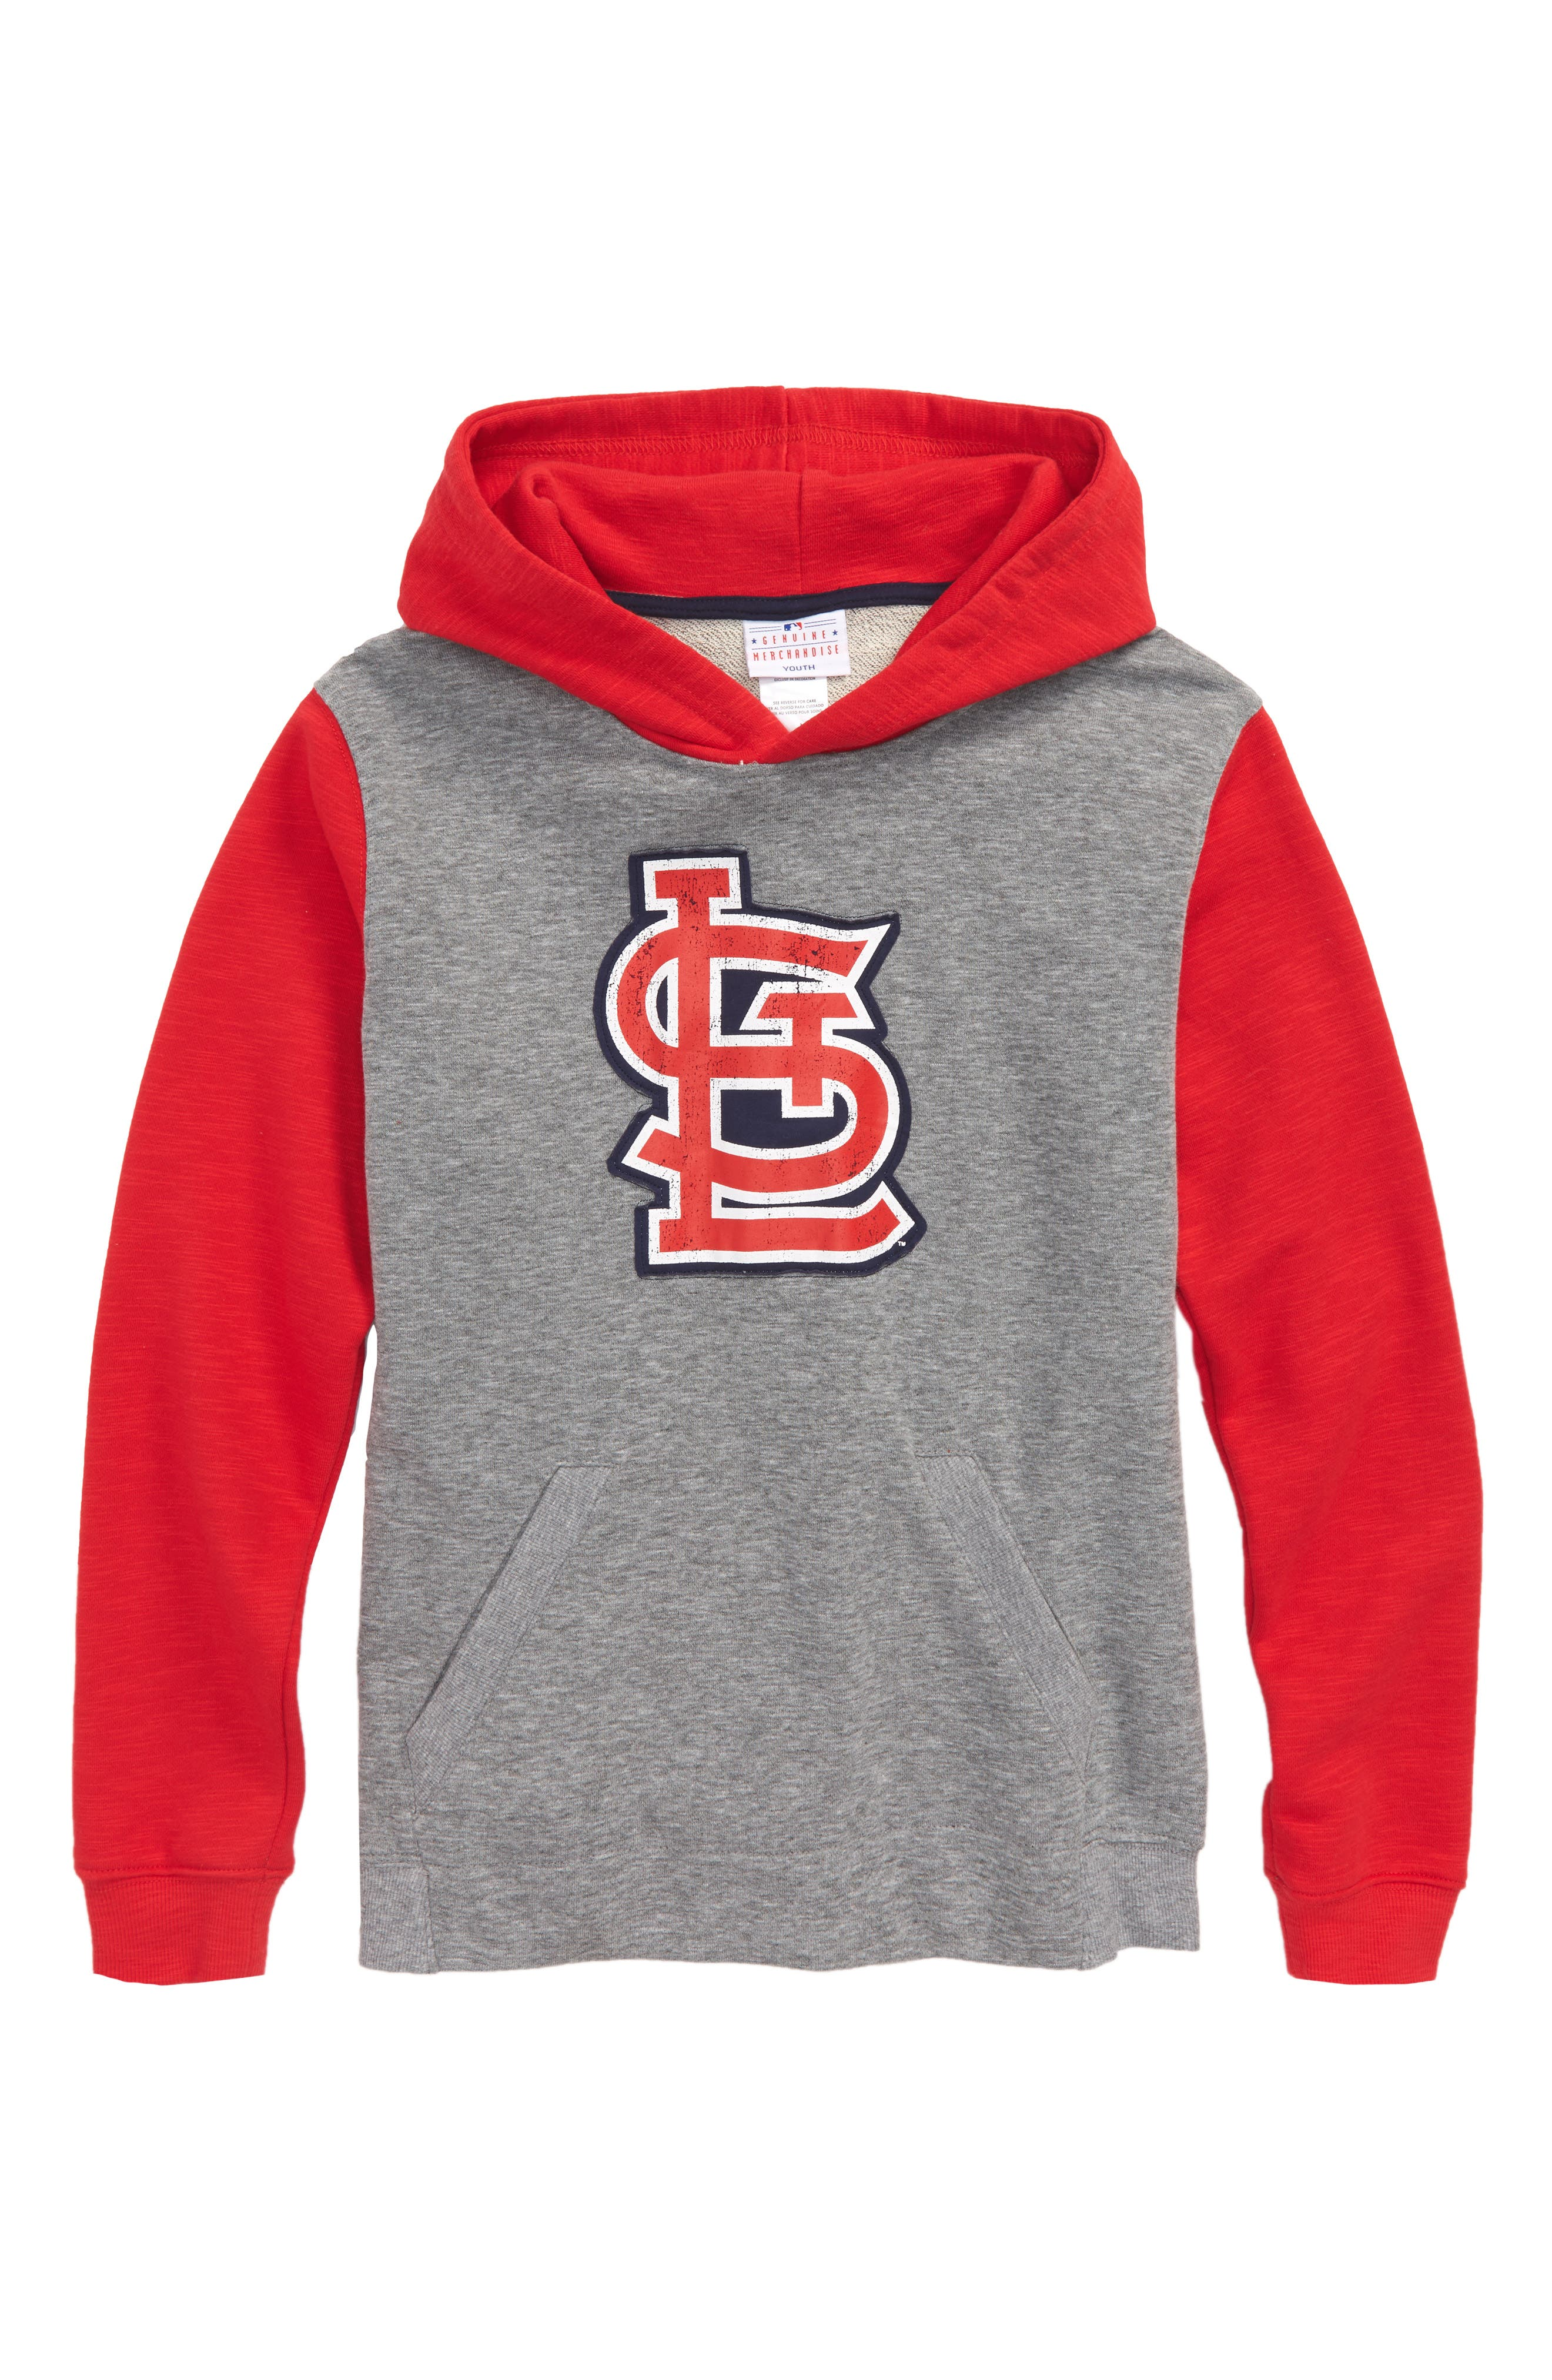 New Beginnings - St. Louis Cardinals Pullover Hoodie,                             Main thumbnail 1, color,                             020